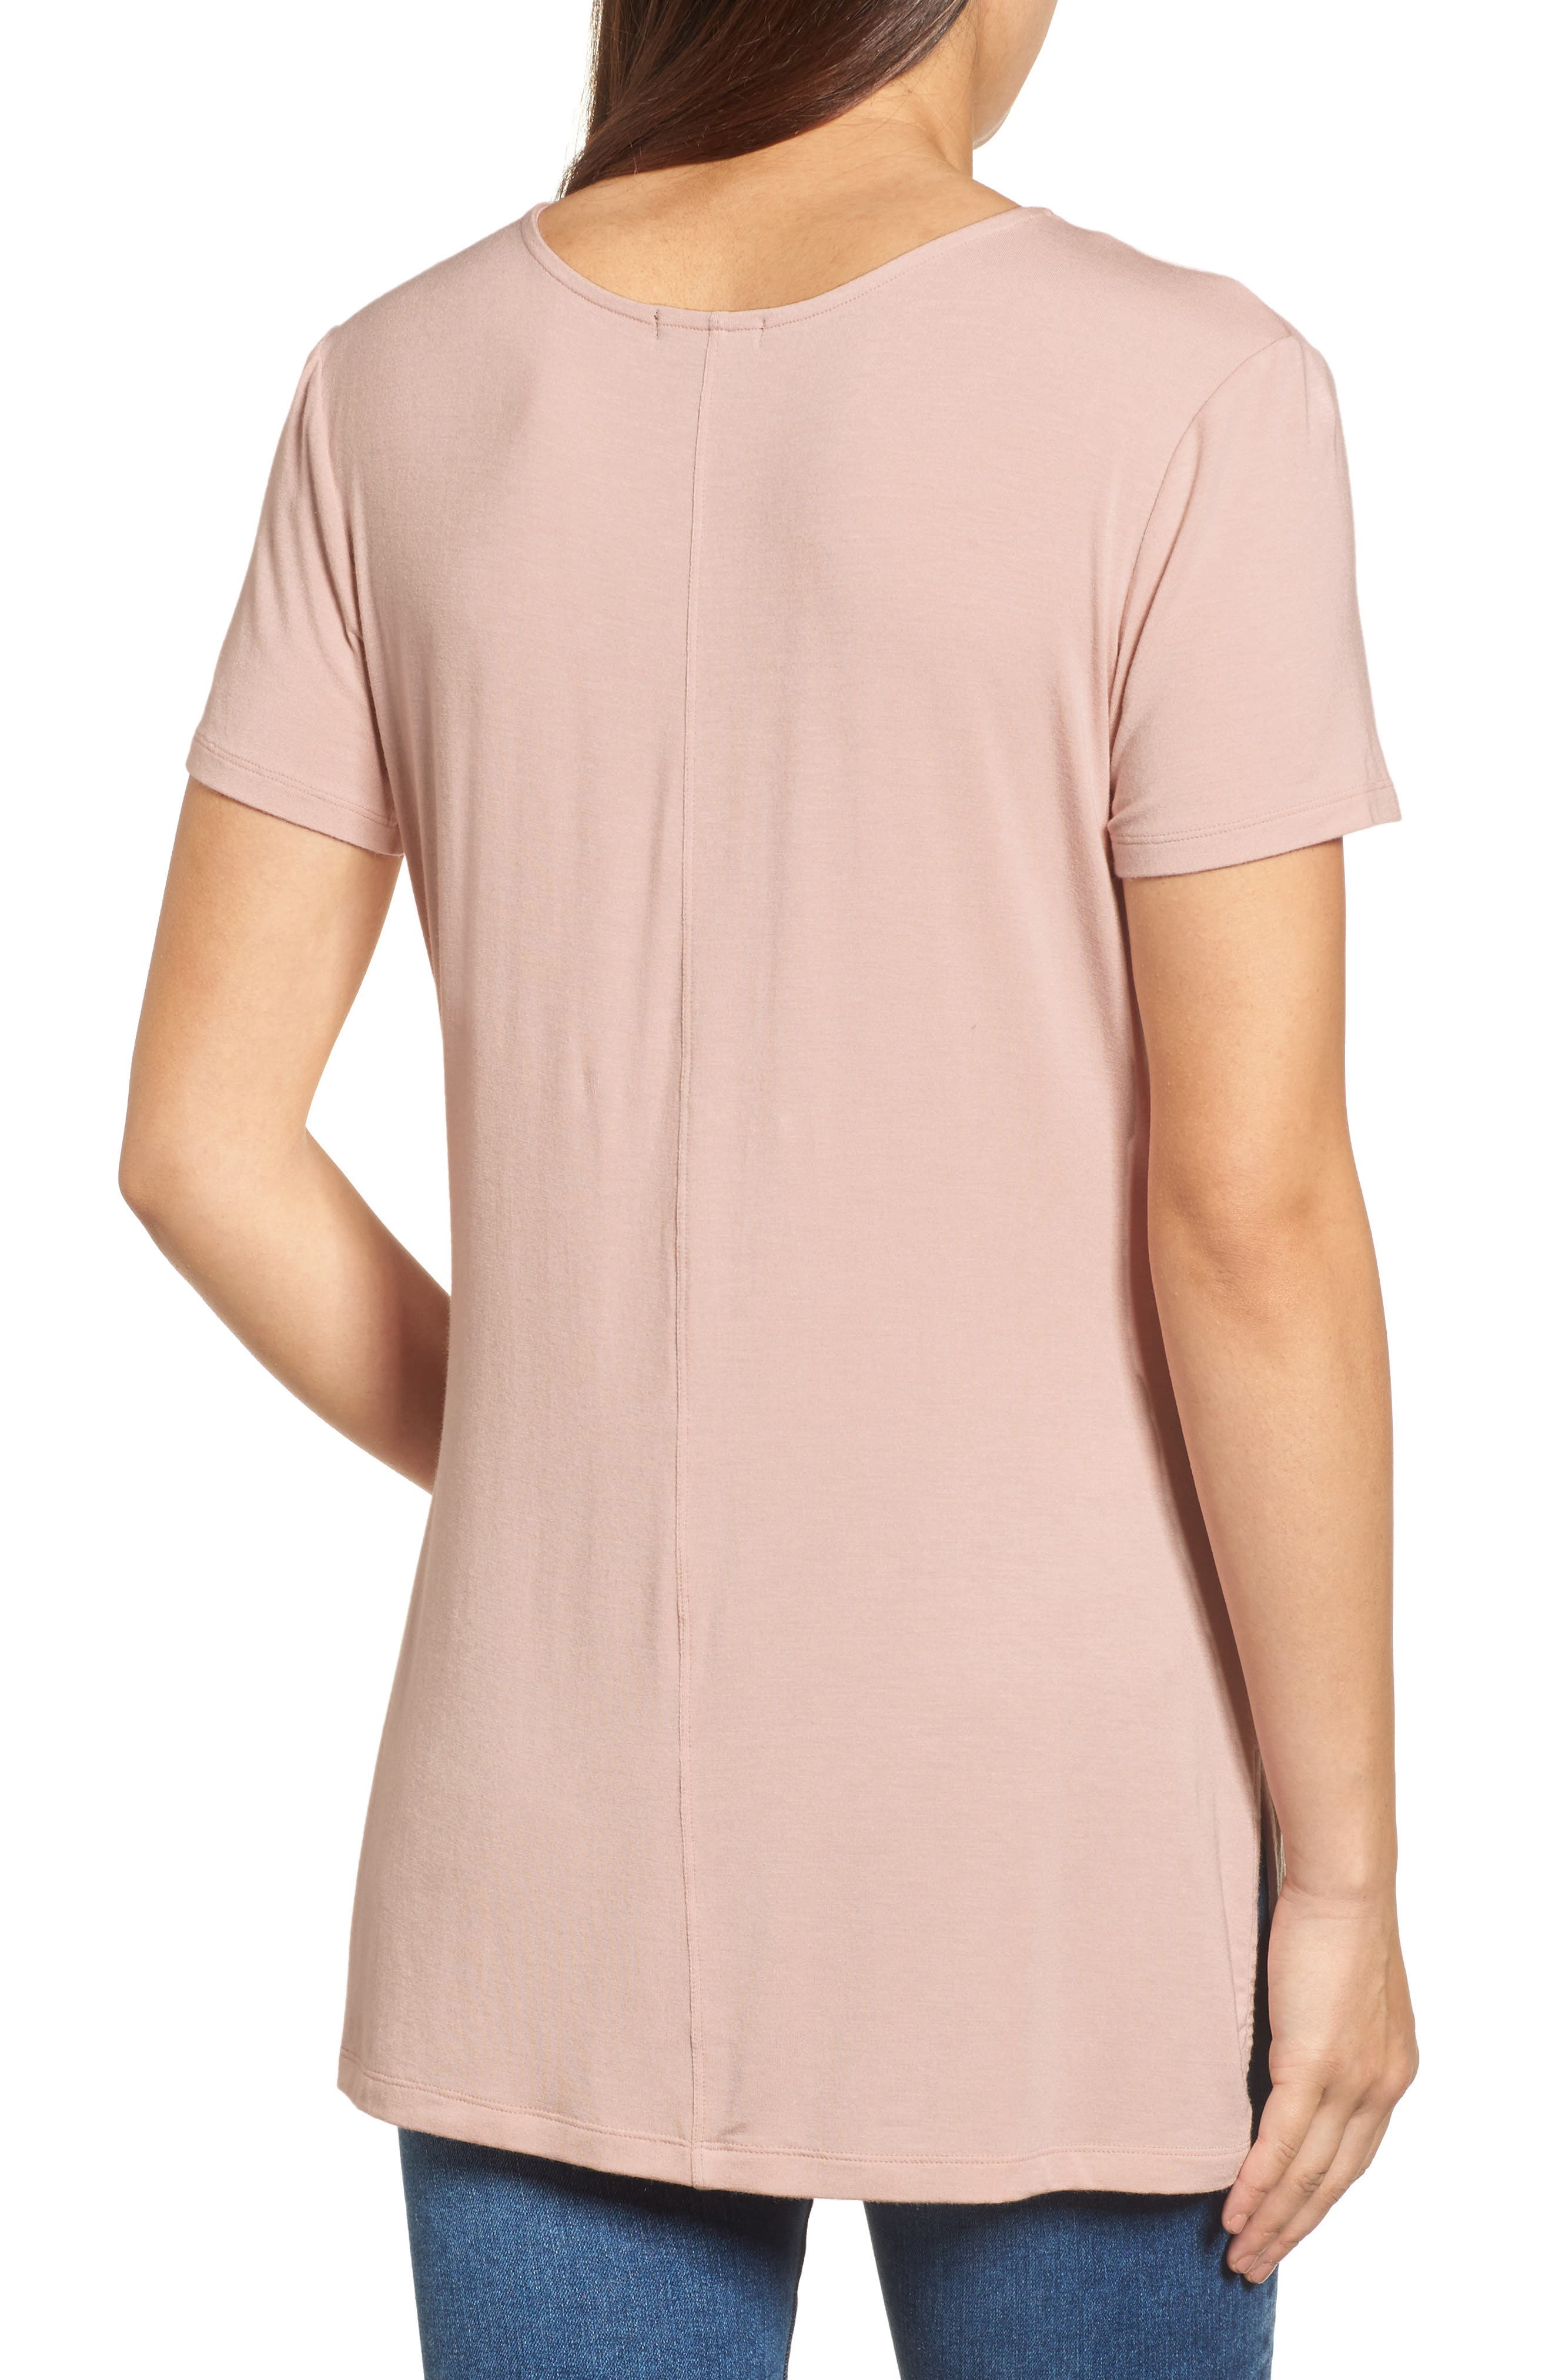 Alternate Image 2  - Halogen® V-Neck Tunic Tee (Regular & Petite)